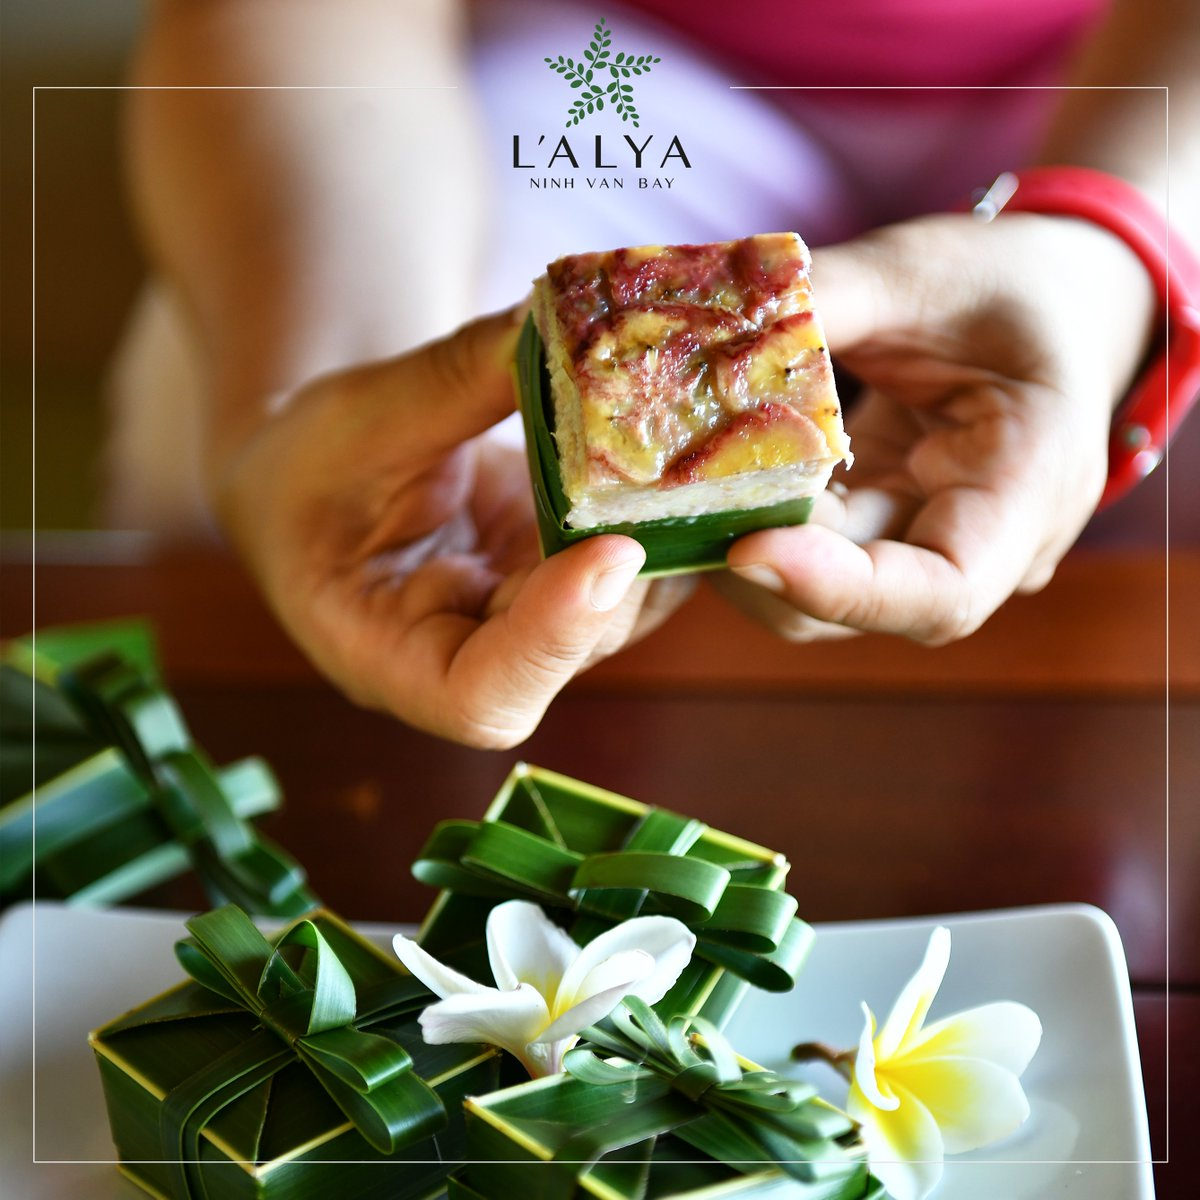 Taste our local scrumptious banana cakes, delicious Vietnamese desserts from our pastry chefs. #Vietnam #nhatrang #ecotourism #luxury #lifestyle #beach #peaceful #sunshine #tropical #travel